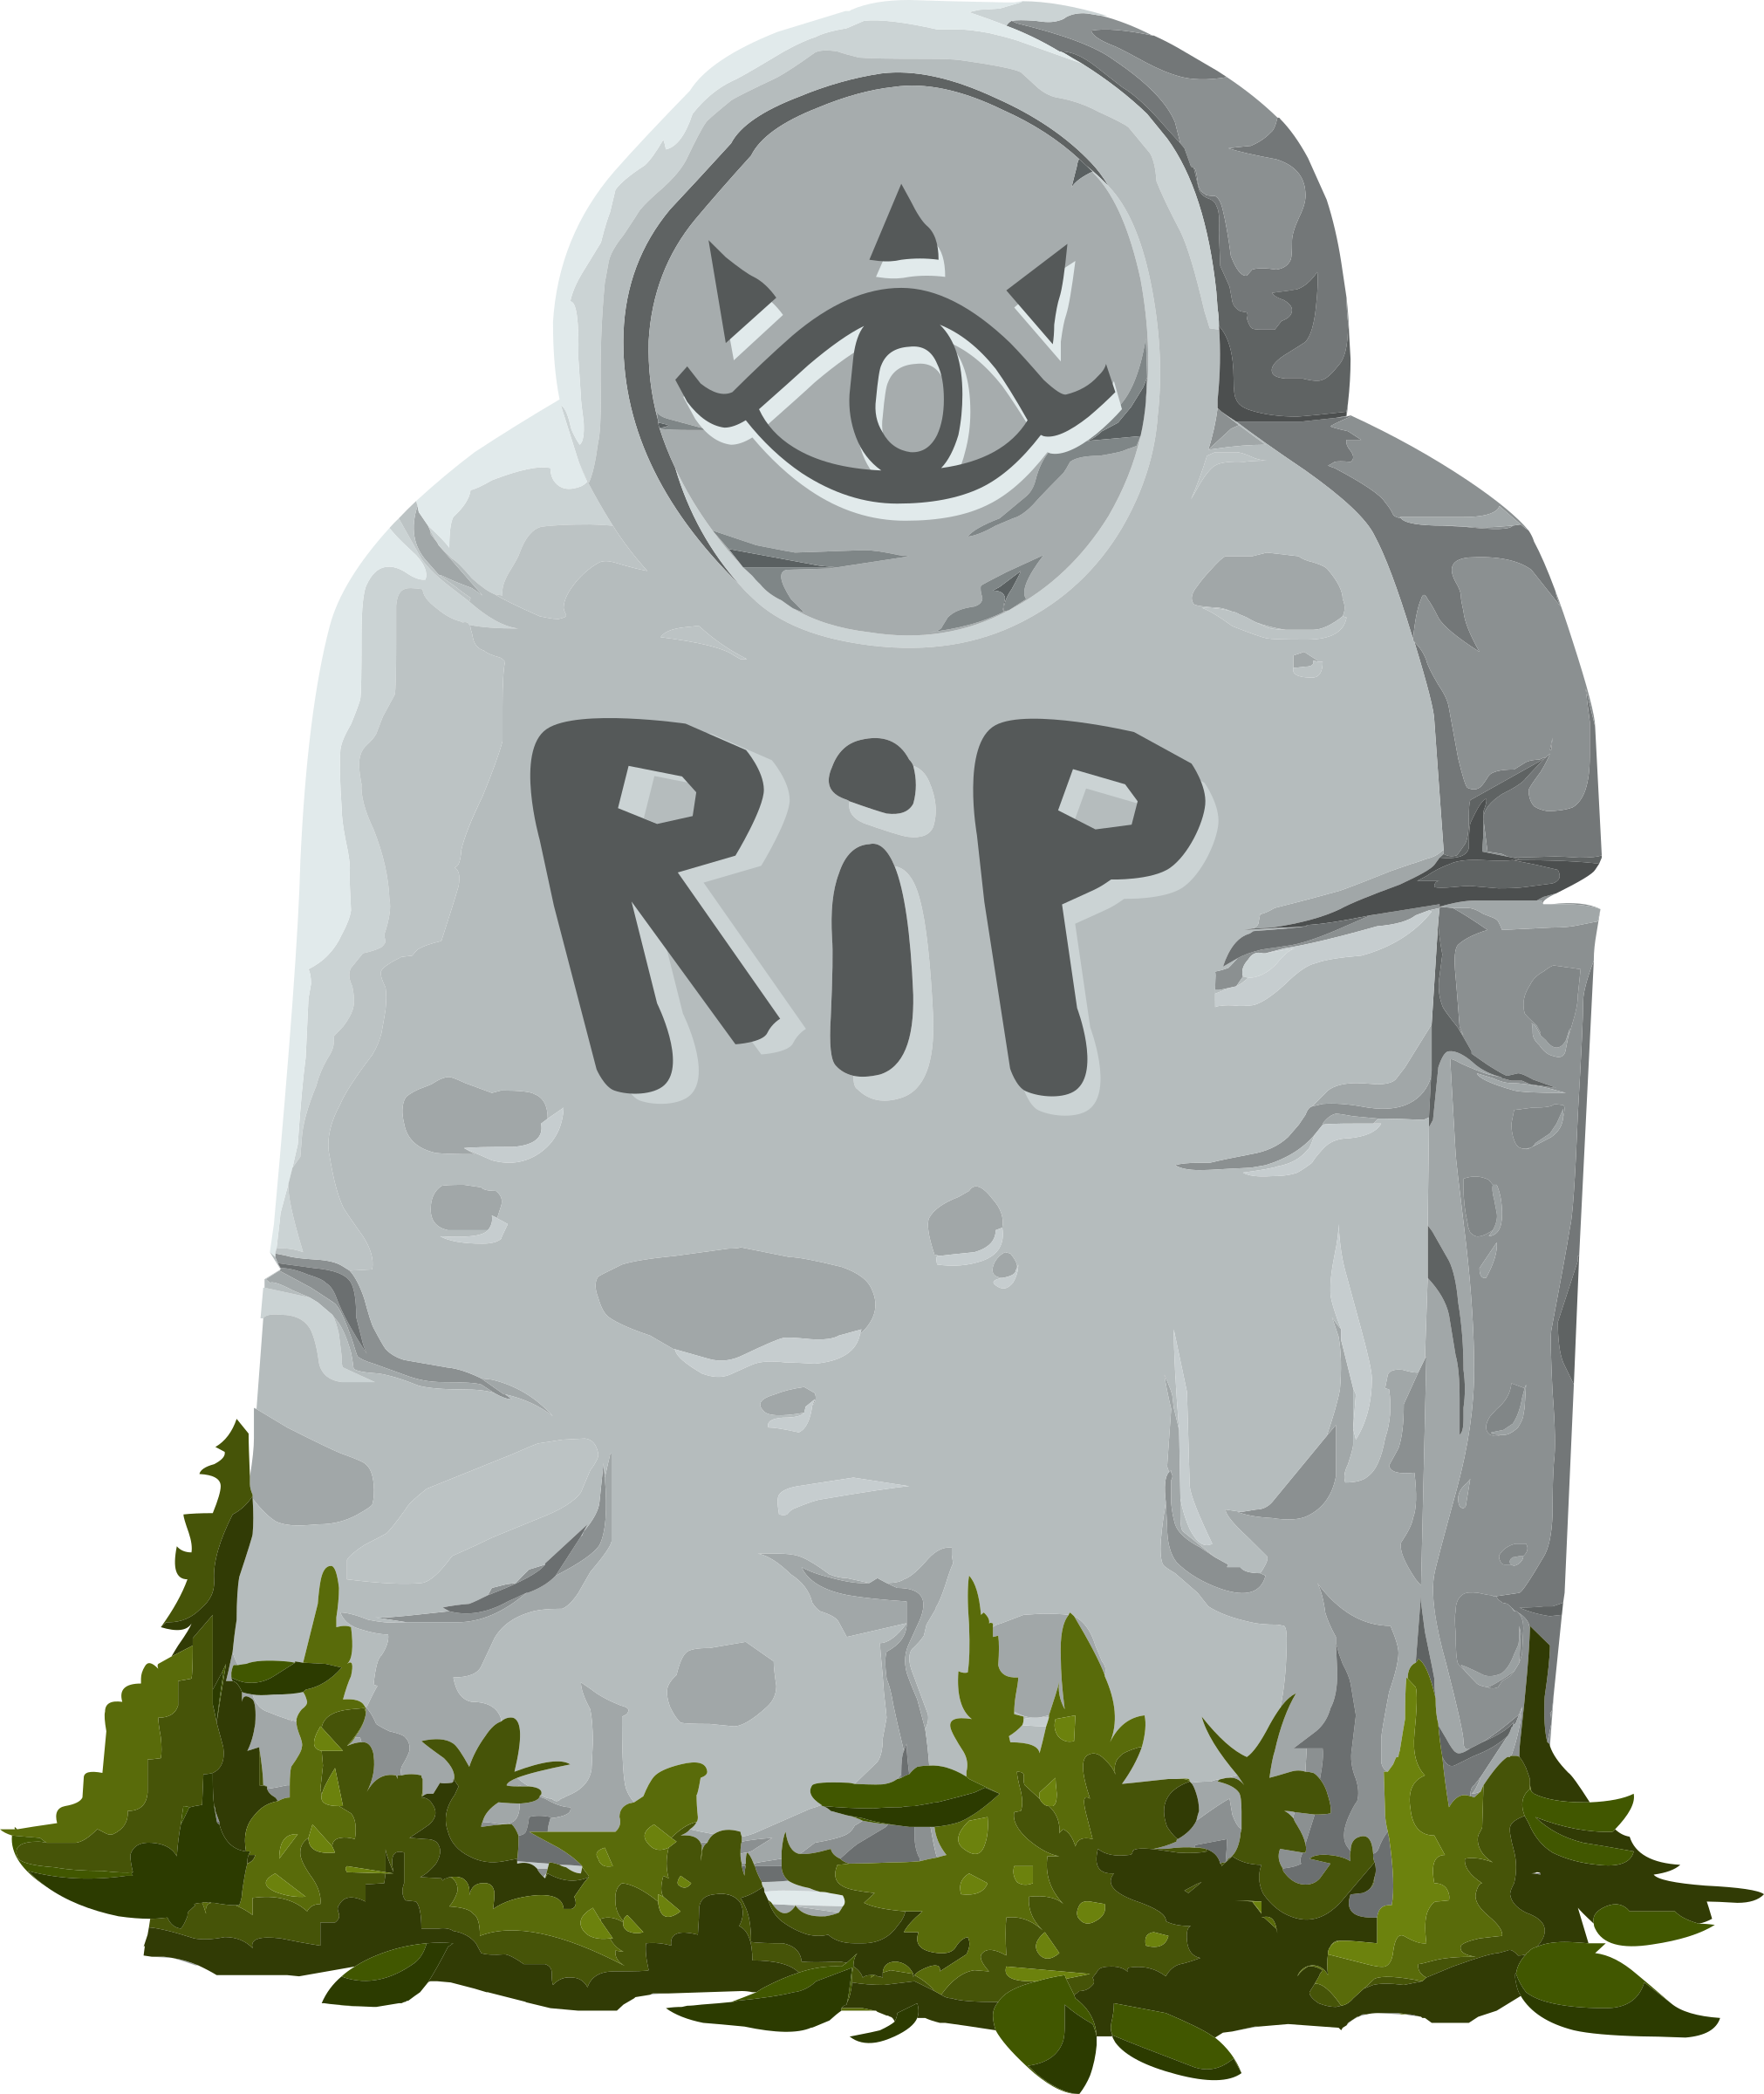 Old drawing gravestone. Collection of free graves